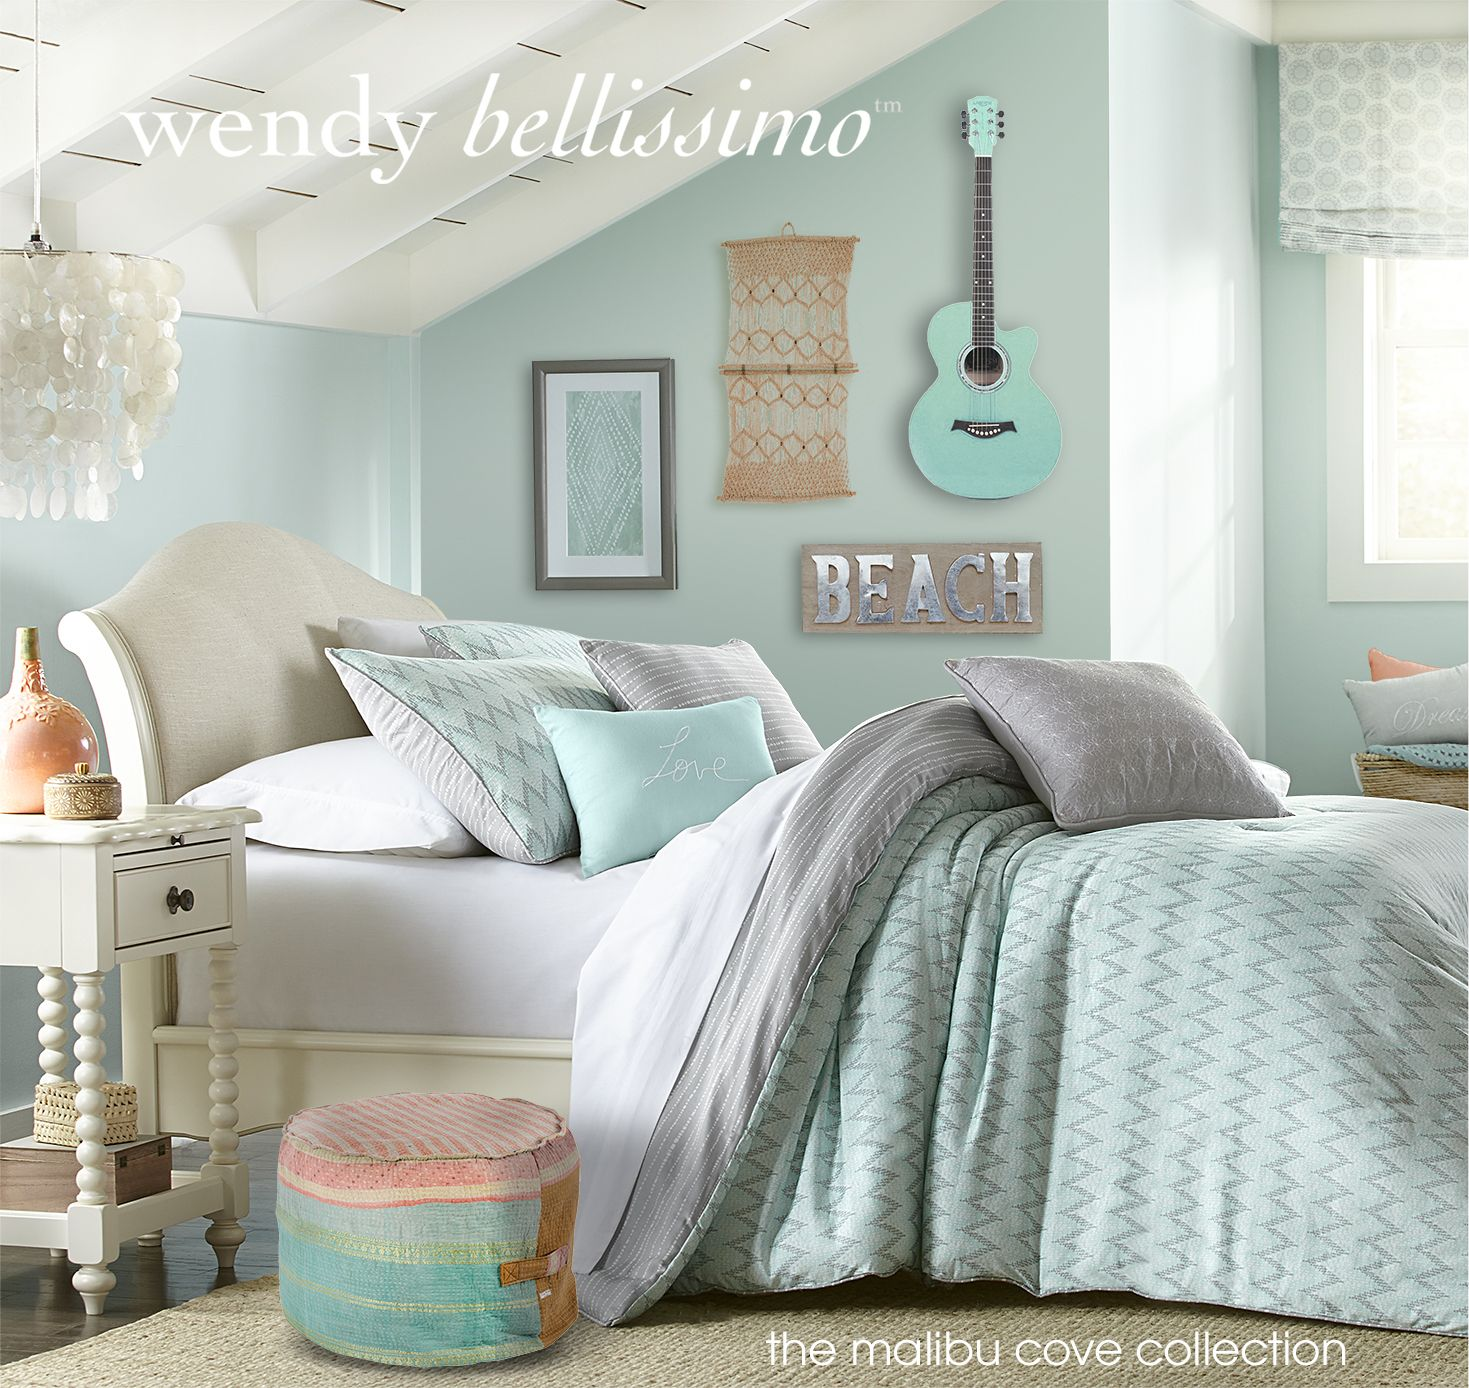 Wendy Bellissimo Bedding Launching August 2015 Wendy